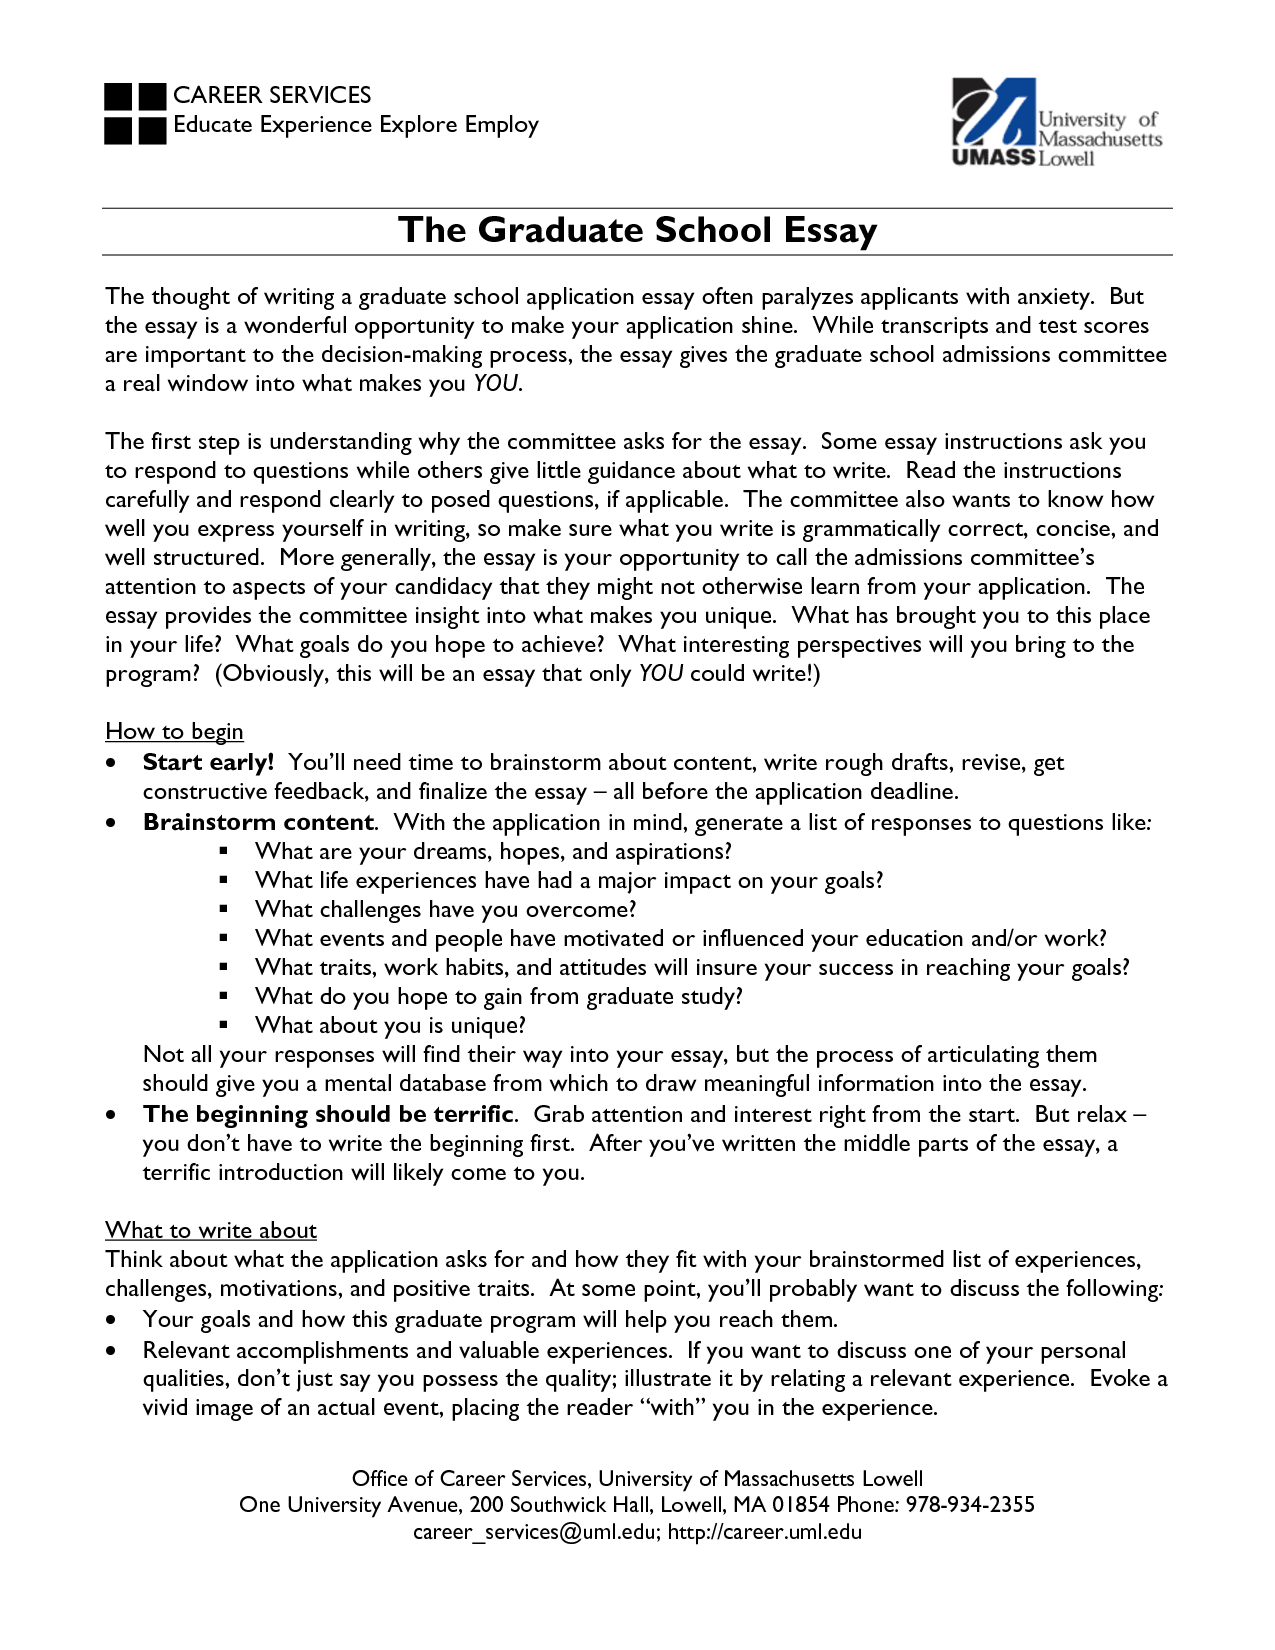 vcu application essay 2015 movies